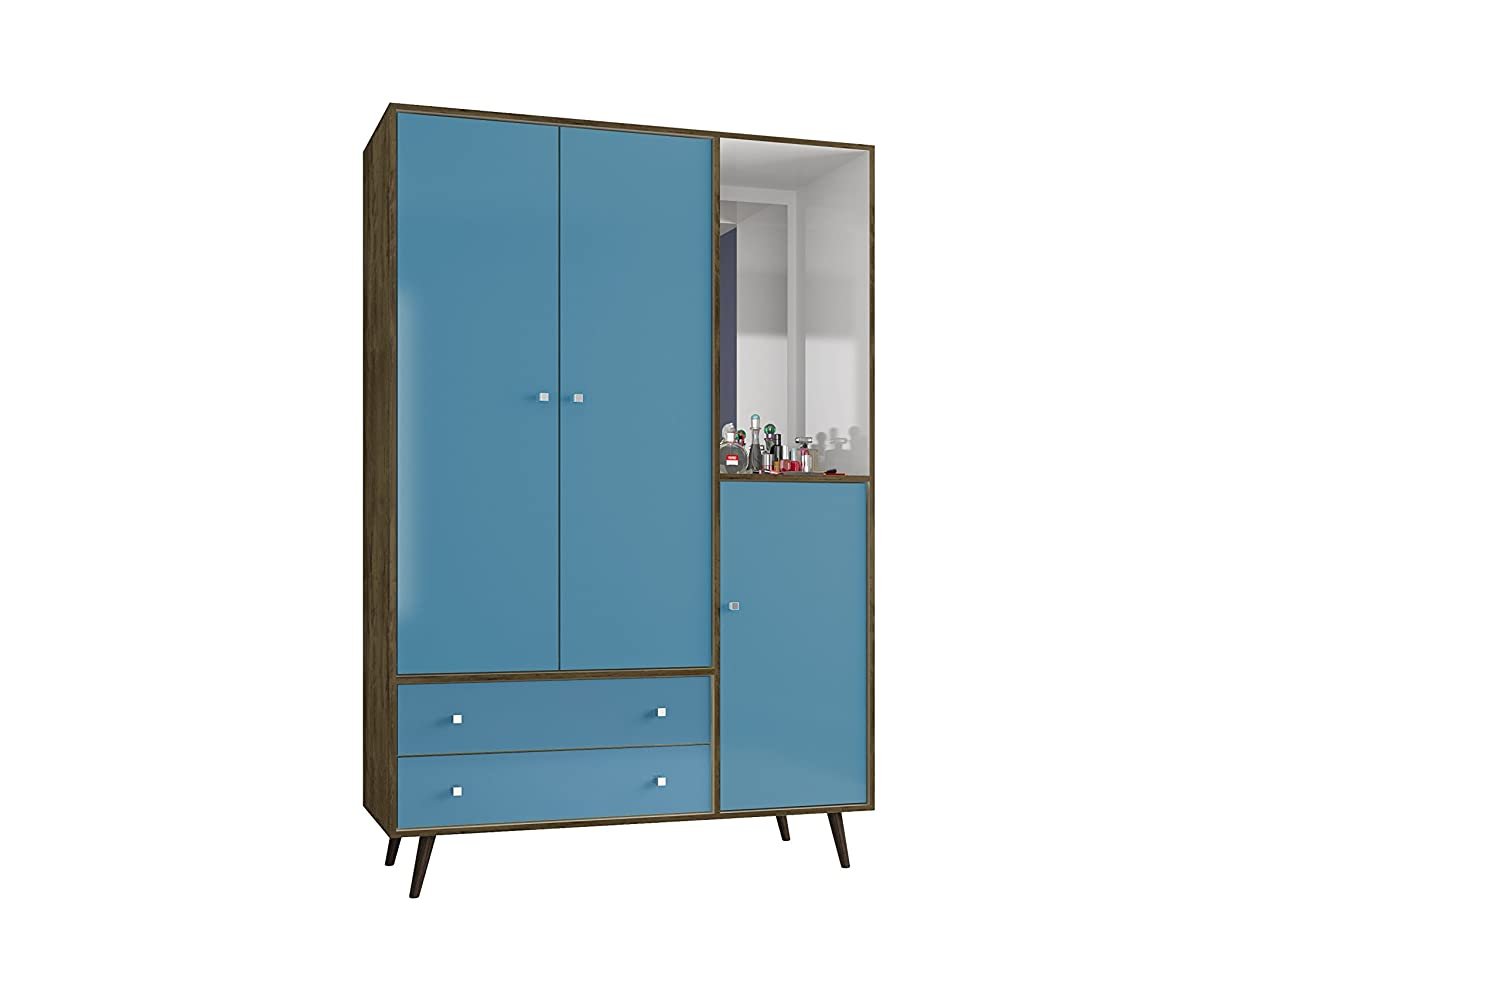 Manhattan Comfort Liberty Collection Mid Century Modern Armoire Closet With Two Cabinets and Two Drawers With Open Shelf Space, Blue/Wood 208BMC93